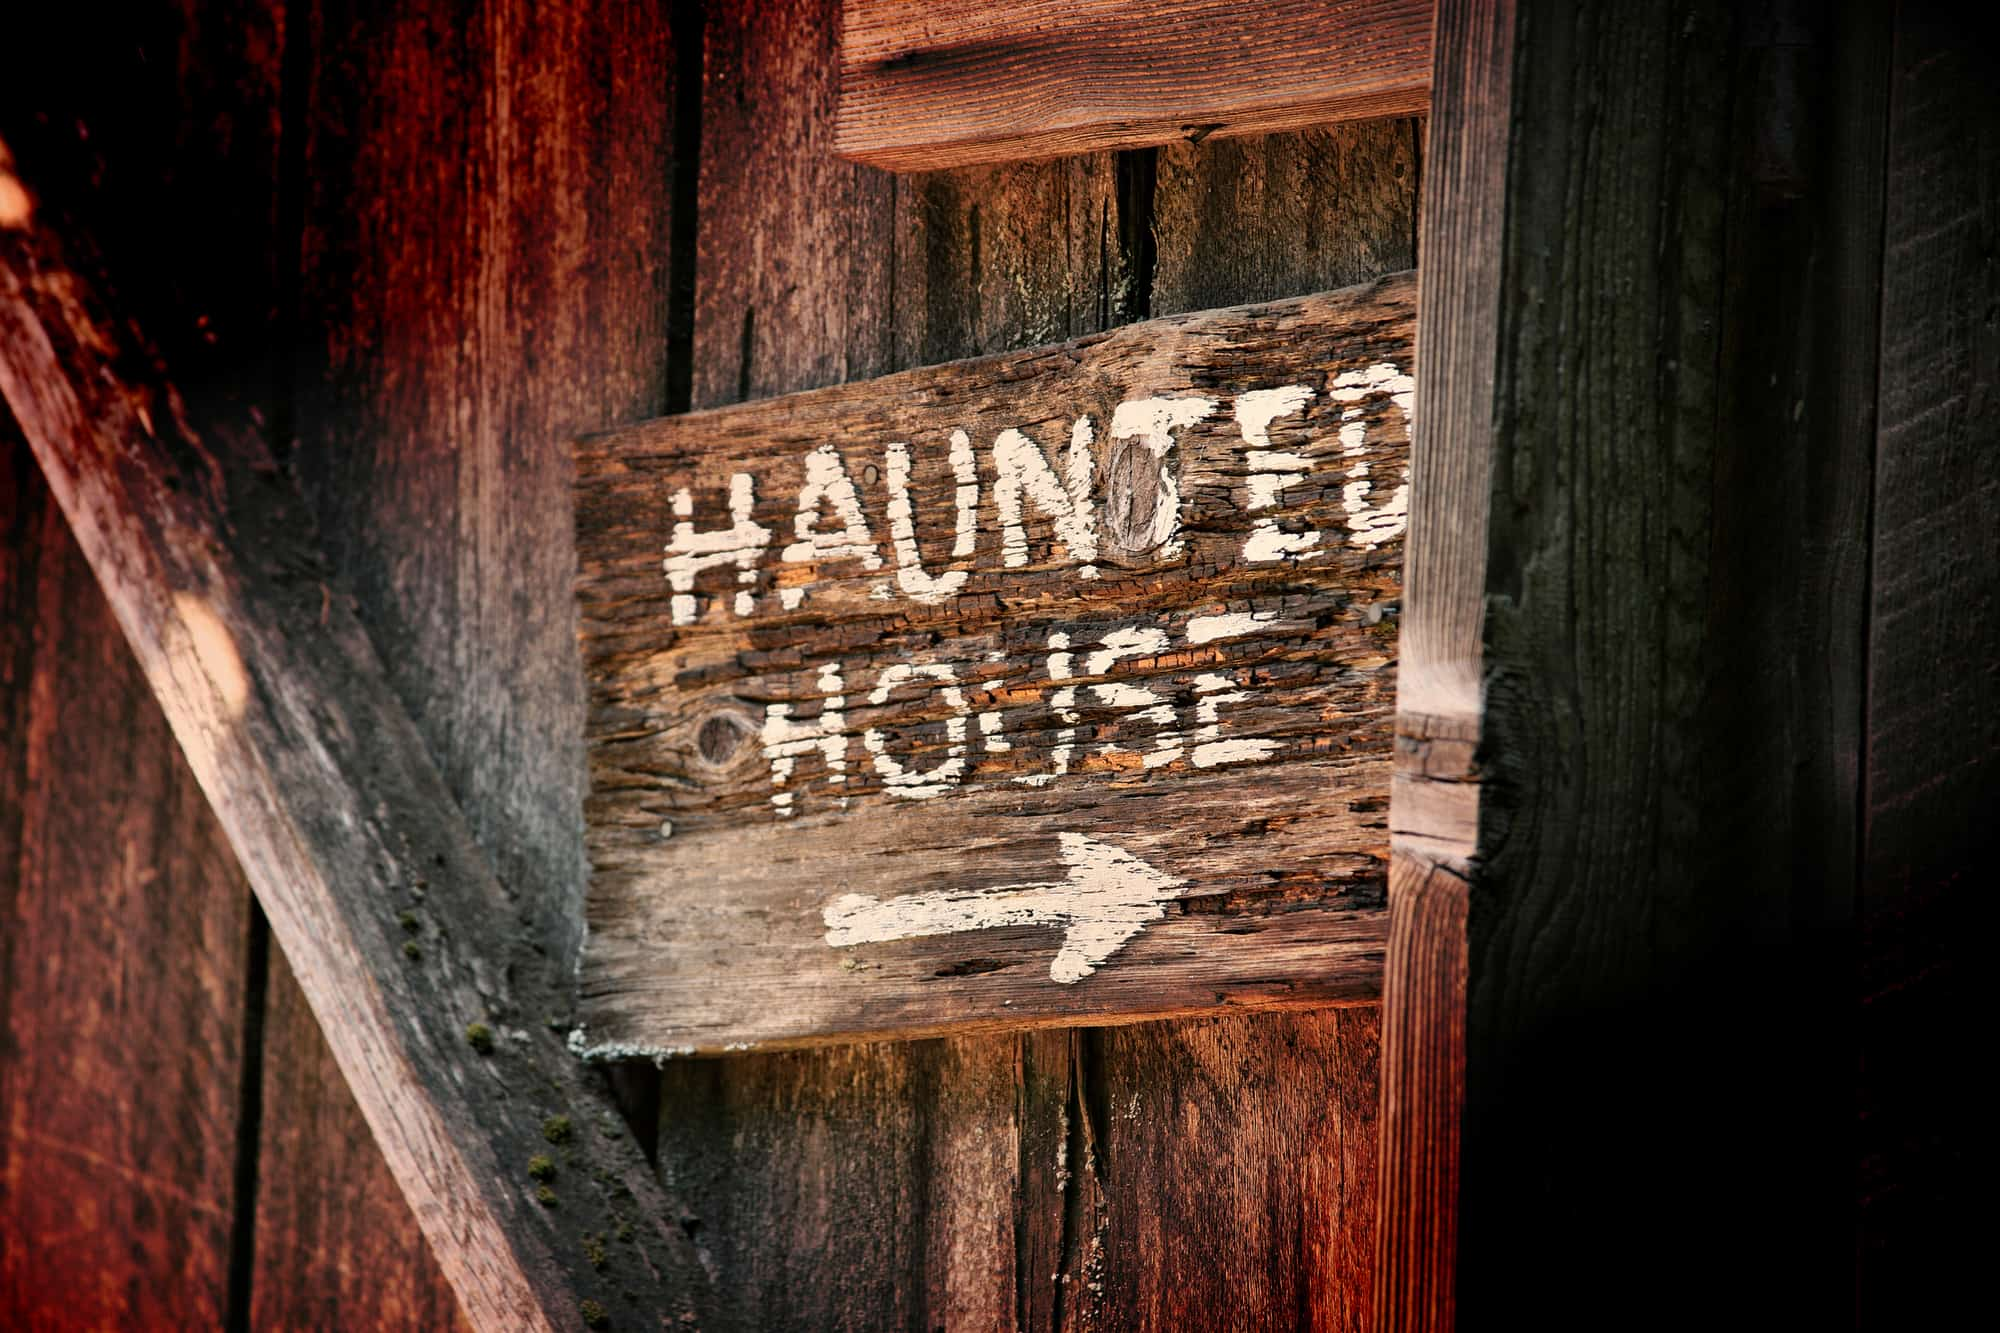 """Wooden """"Haunted House"""" sign with arrow pointing right"""